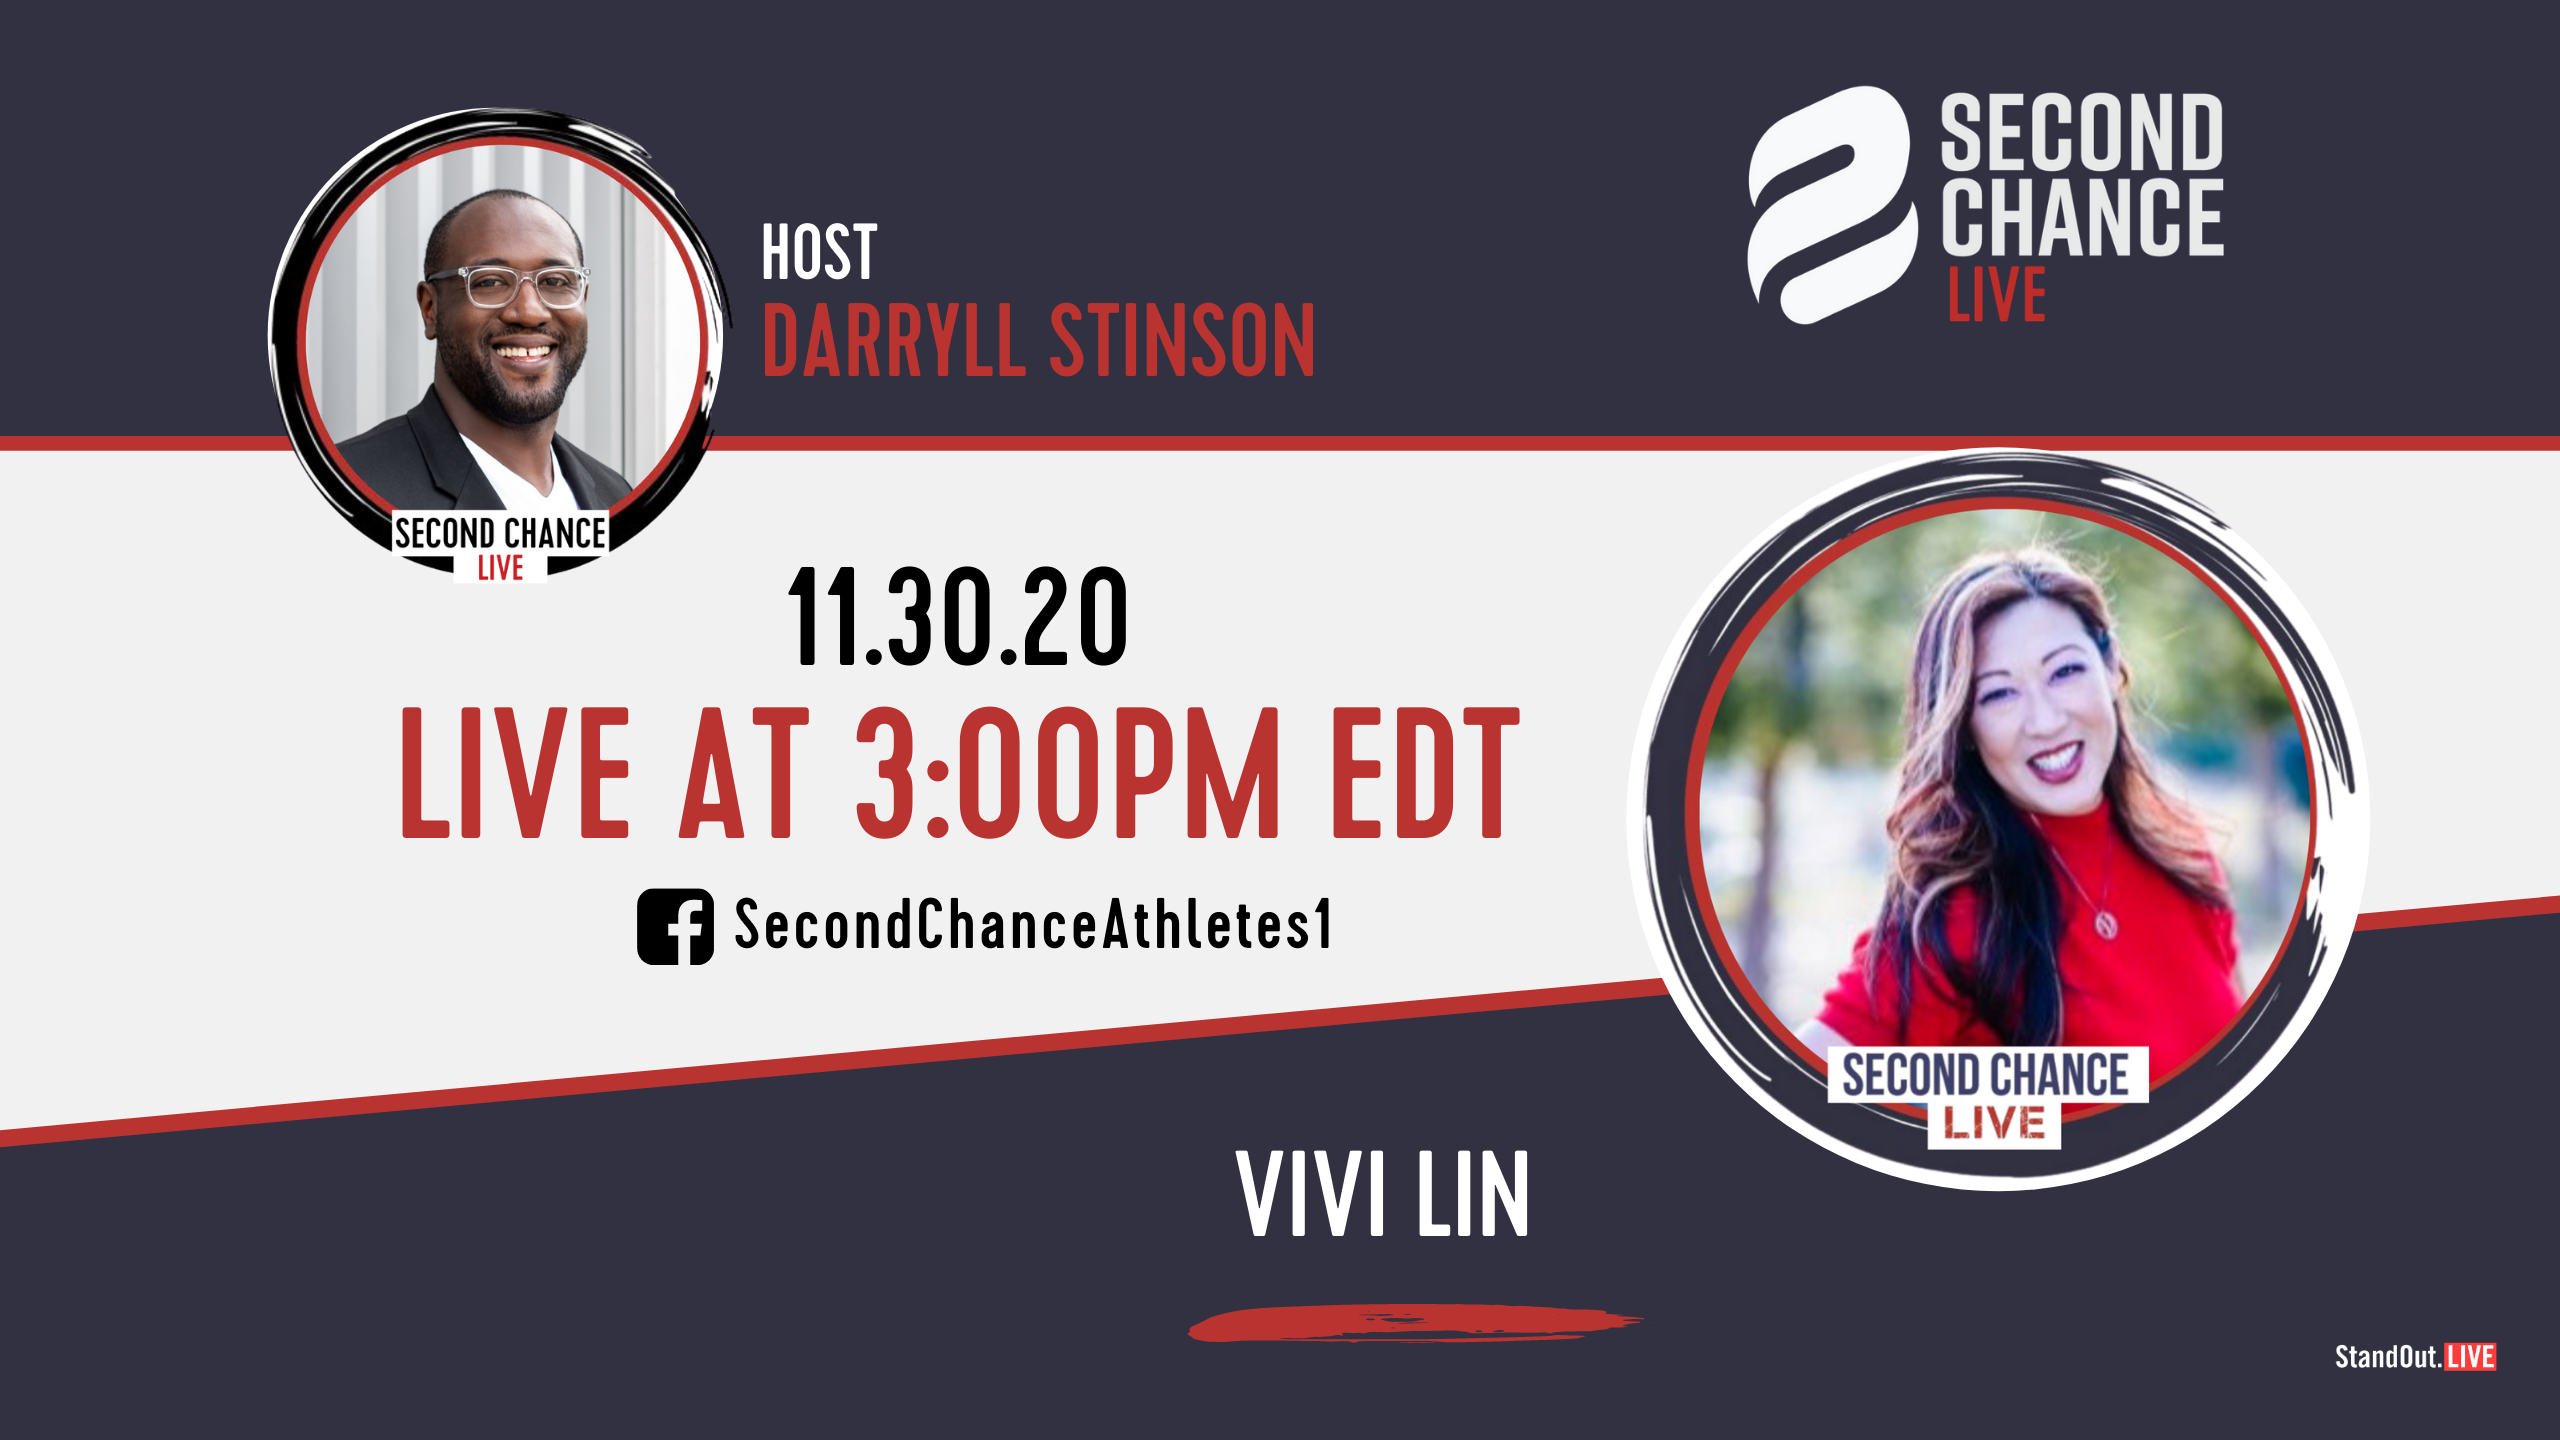 Second Chance LIVE -with Vivi Lin